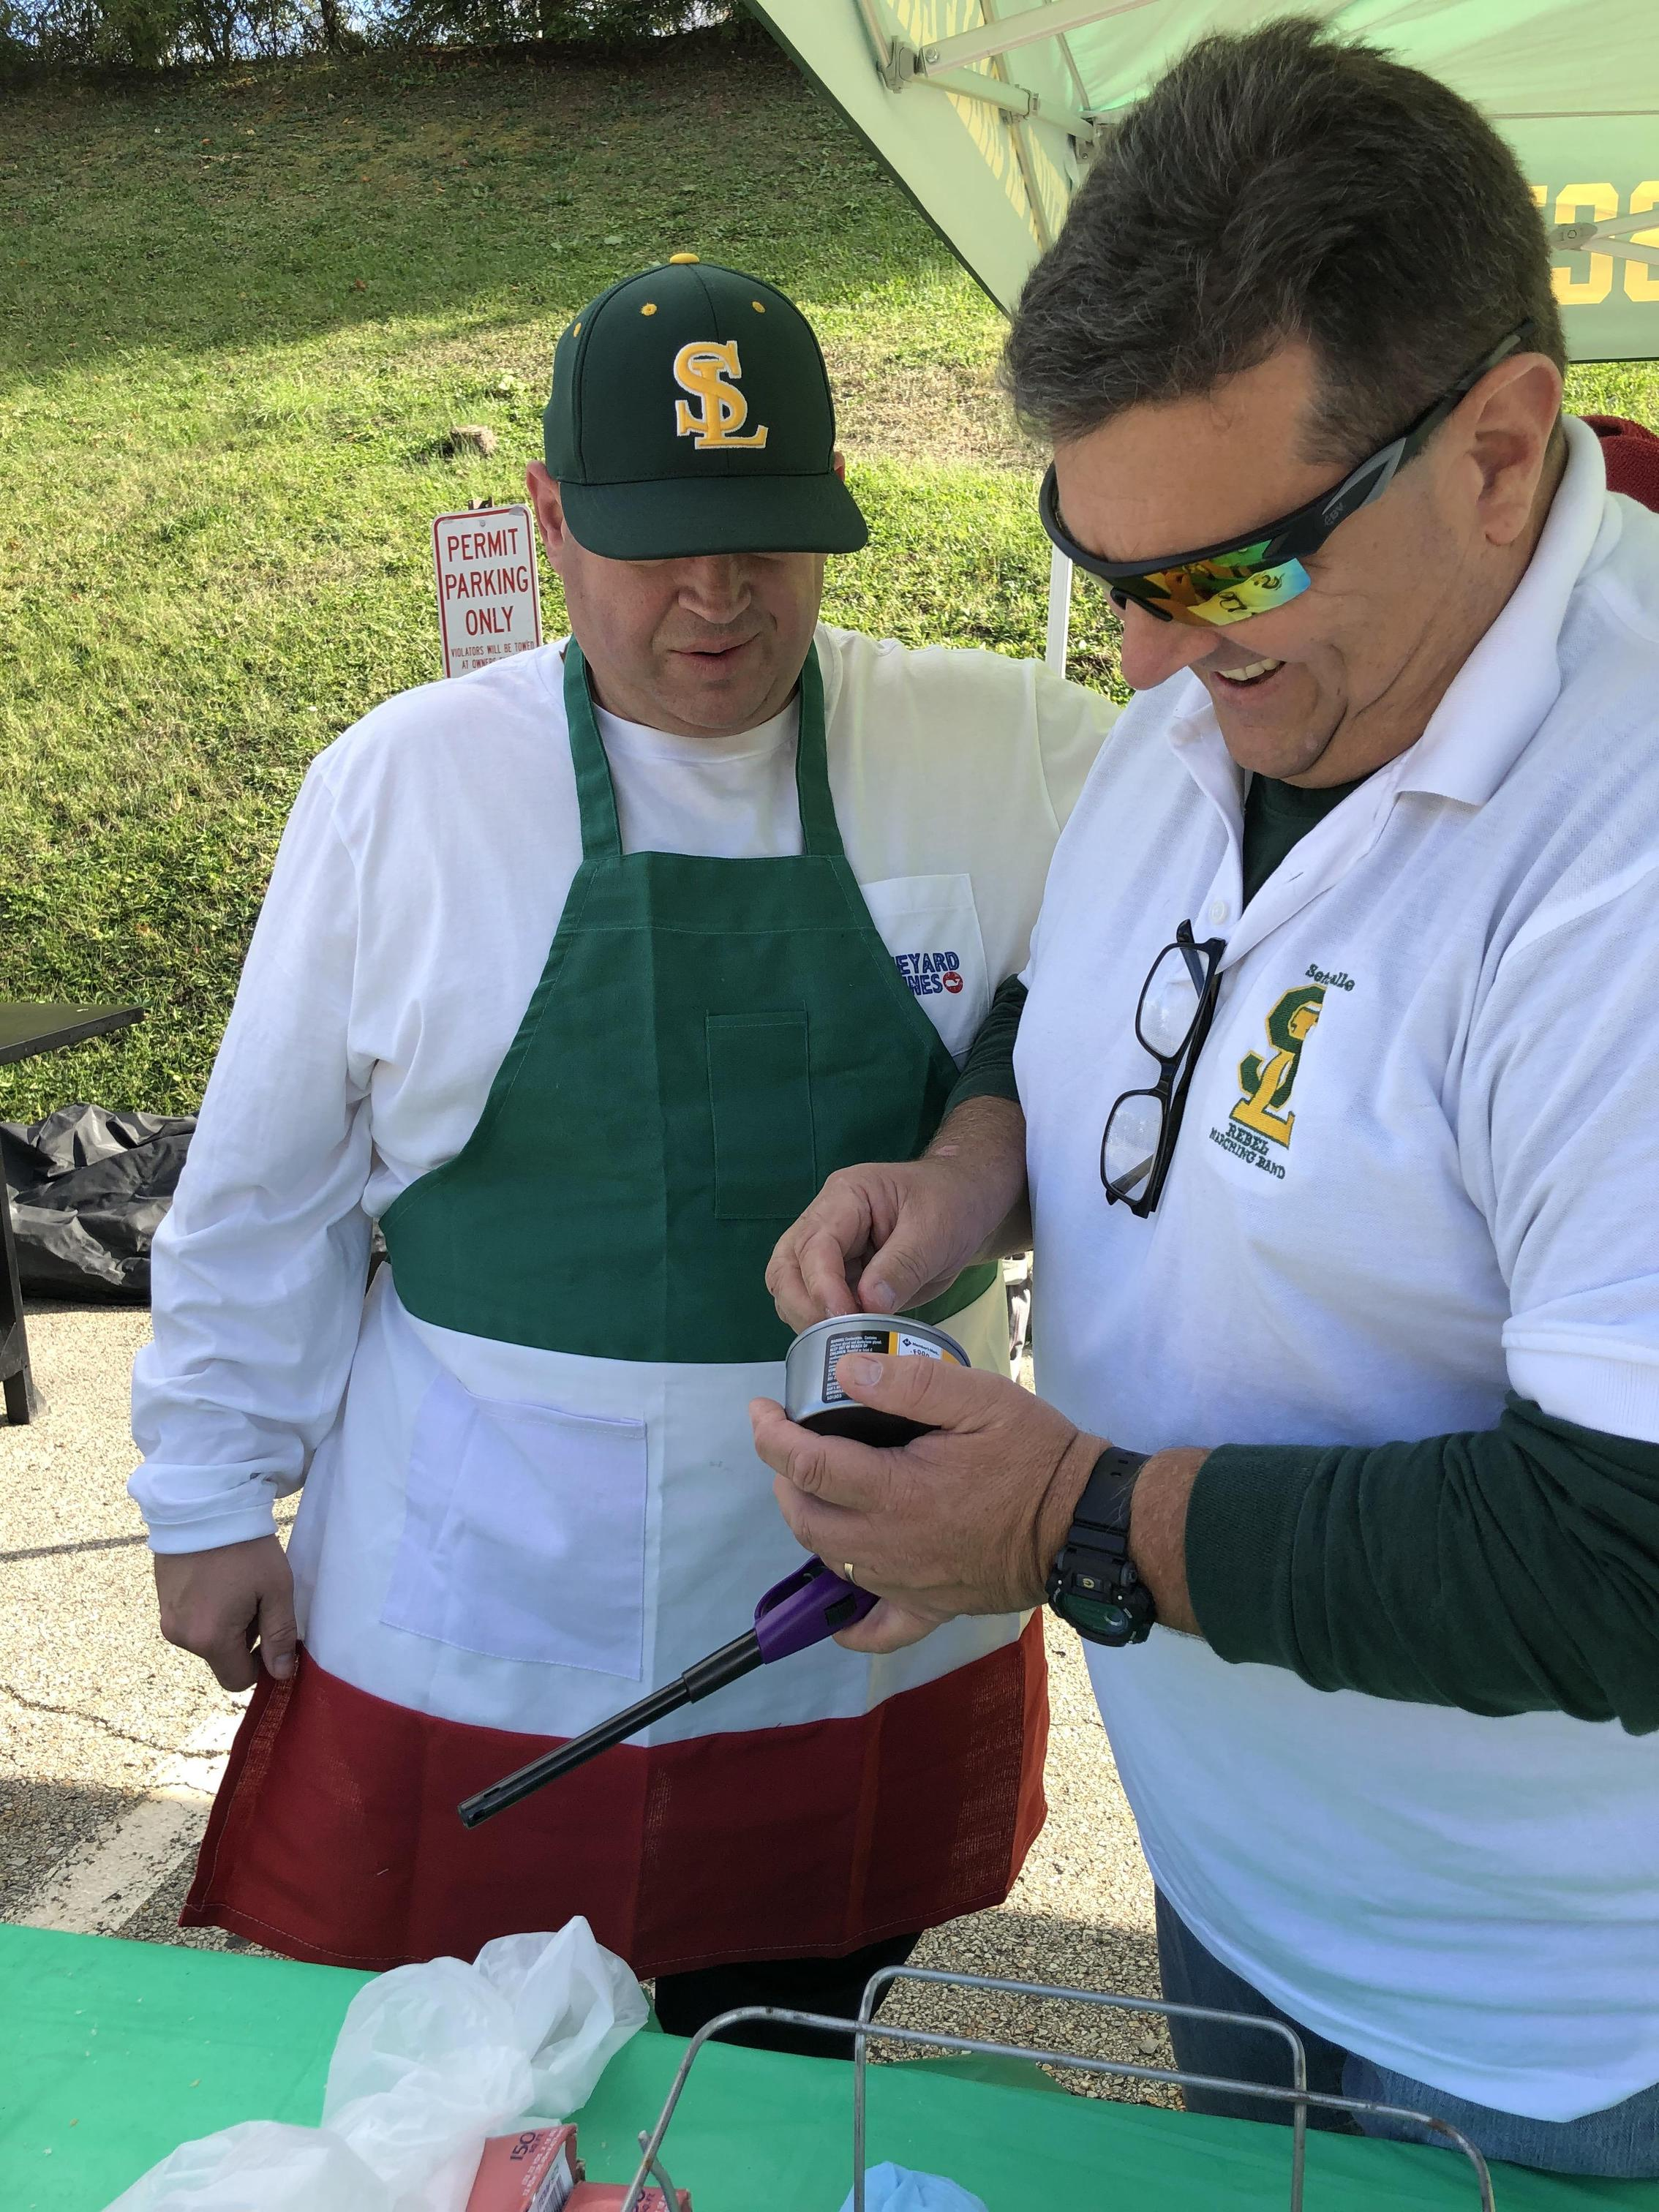 Parents grill at Rebelfest 2019